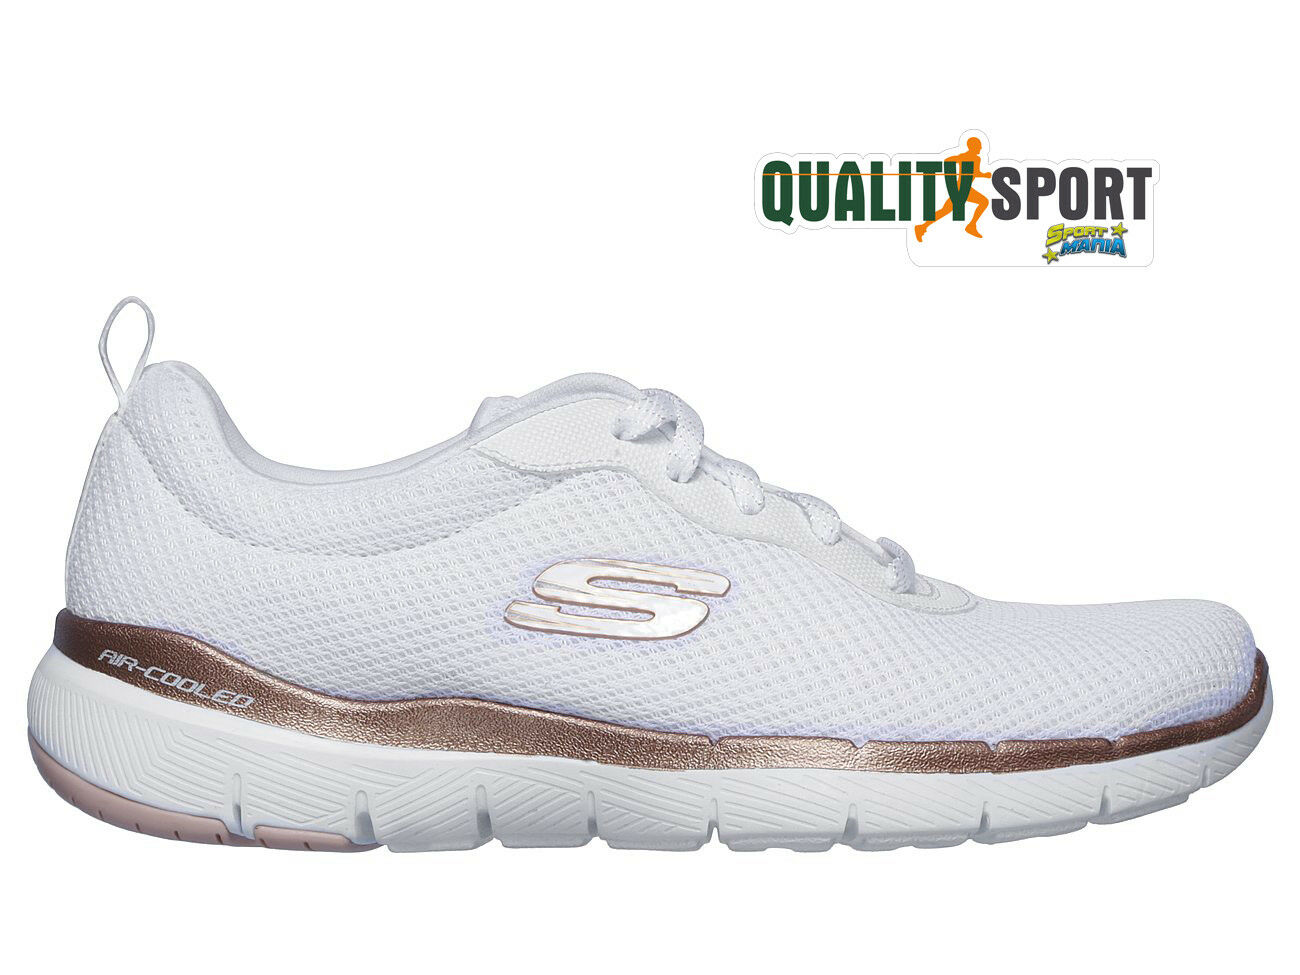 Palestra Appeal Scarpe 13070wtrg Donna 0 2019 Sportive Flex 3 Skechers Bianco Ybf7gy6Iv